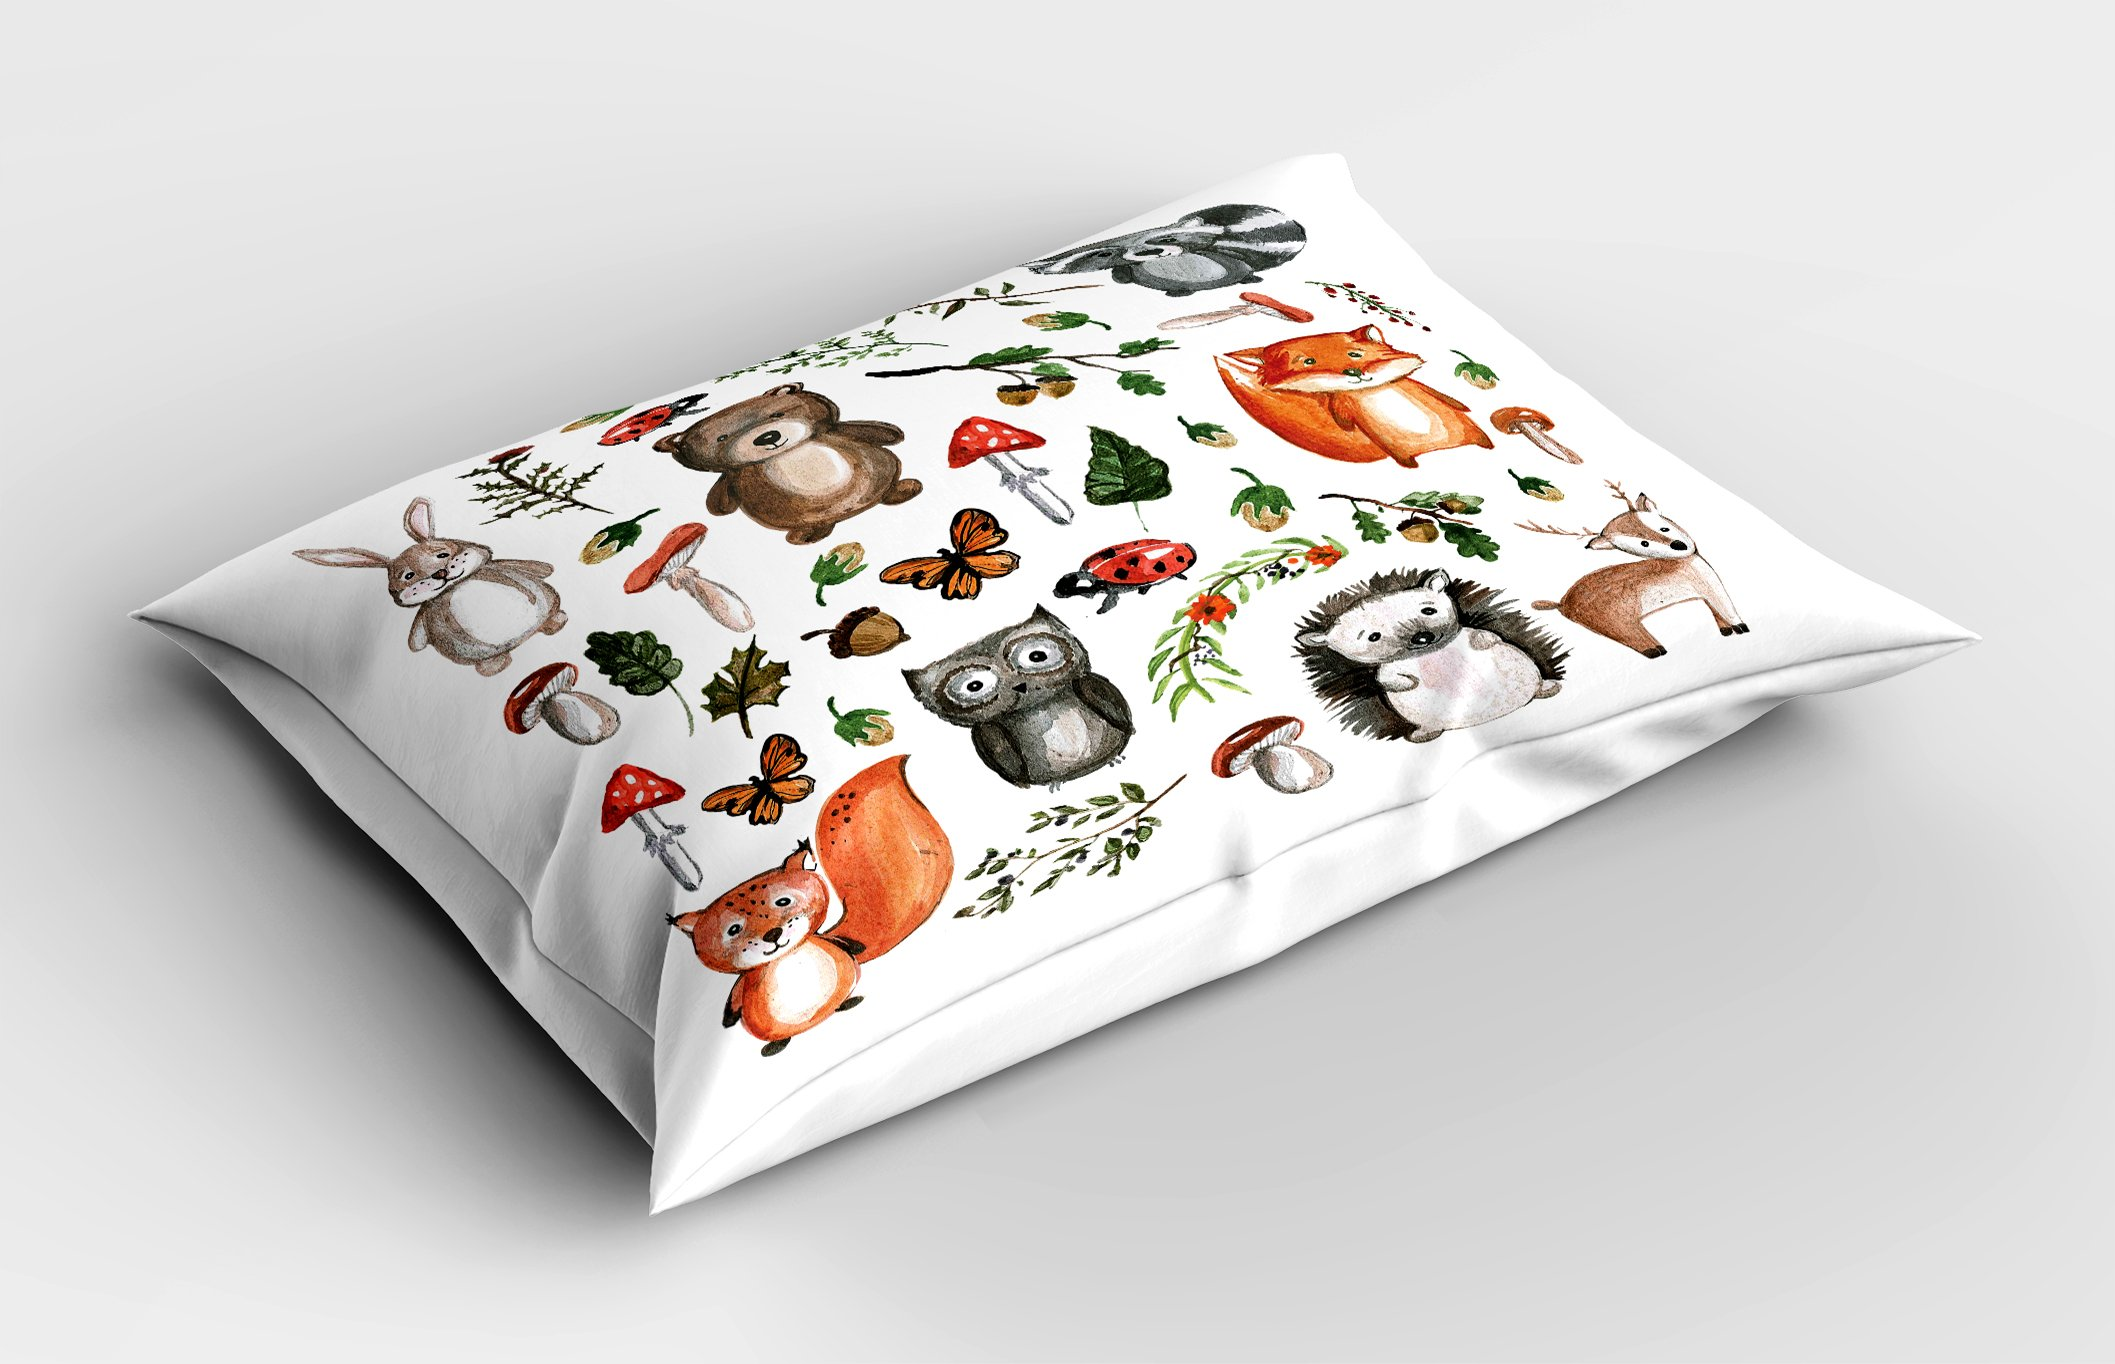 Lunarable Woodland Pillow Sham, Watercolor Hand Drawn Forest Animals Illustration Among Elements of The Woods, Decorative Standard Size Printed Pillowcase, 26 X 20 inches, Multicolor by Lunarable (Image #2)